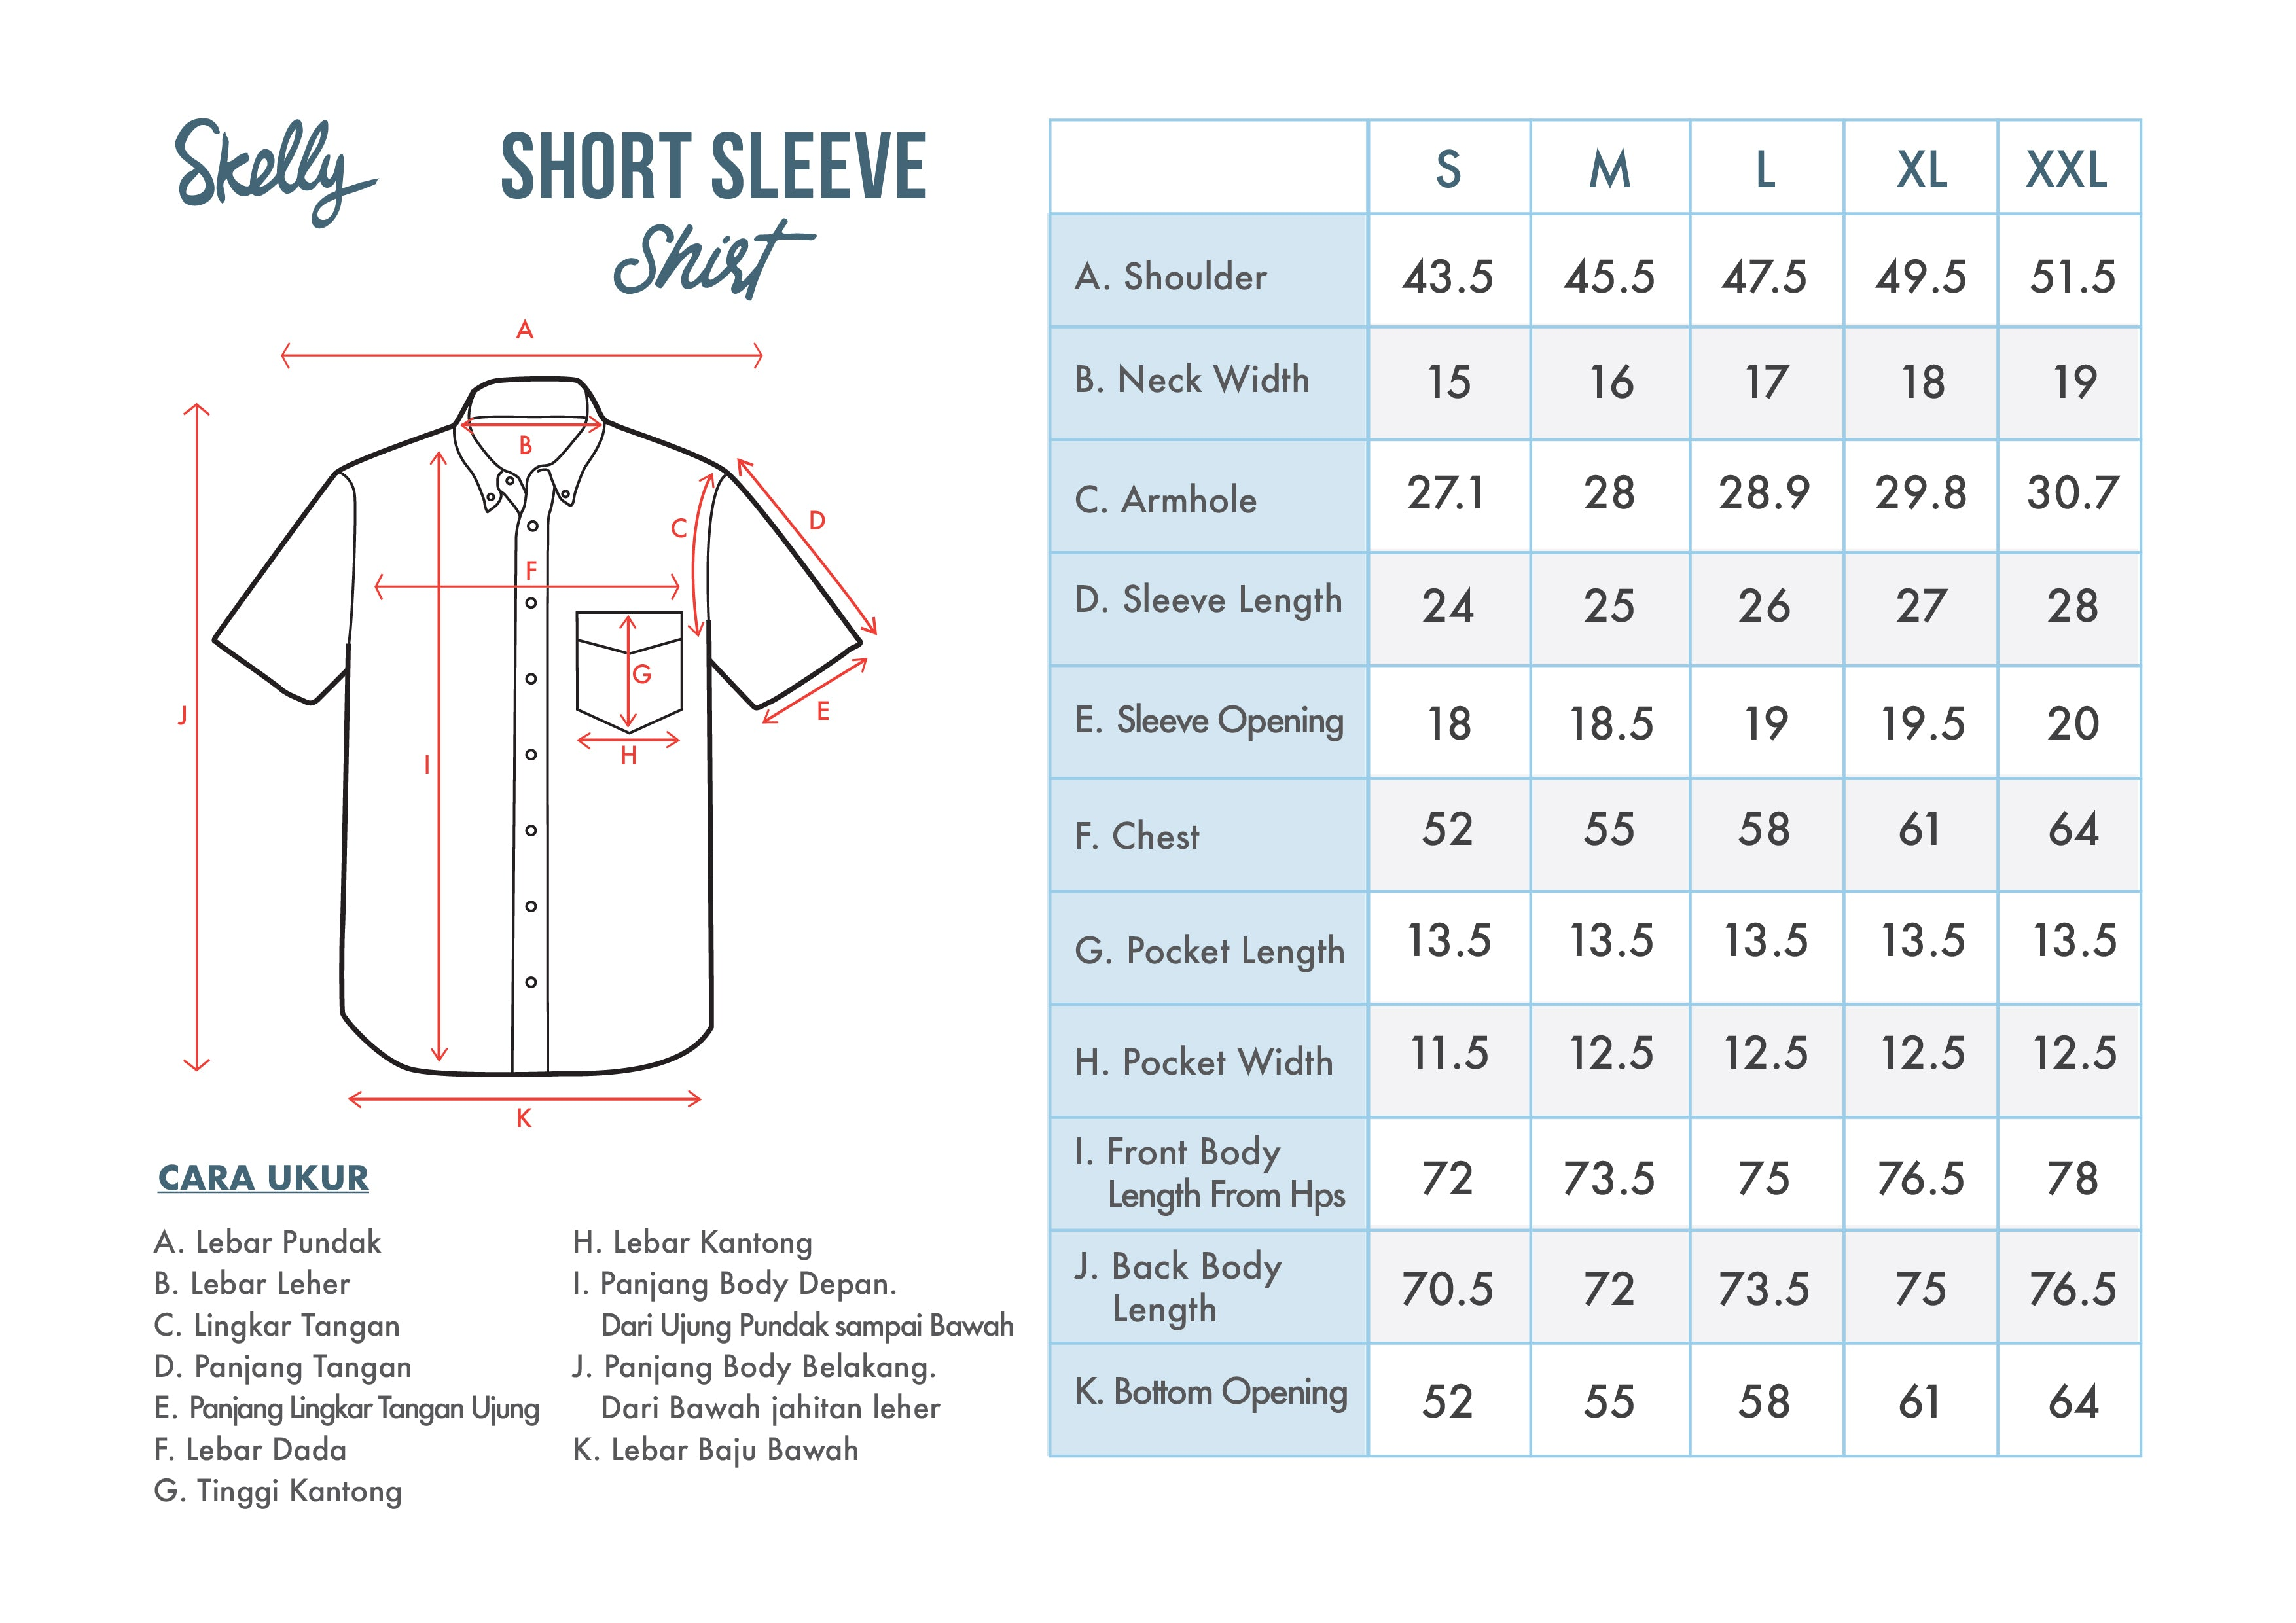 Short Sleeve Shirts - Standard Fit - Size Chart